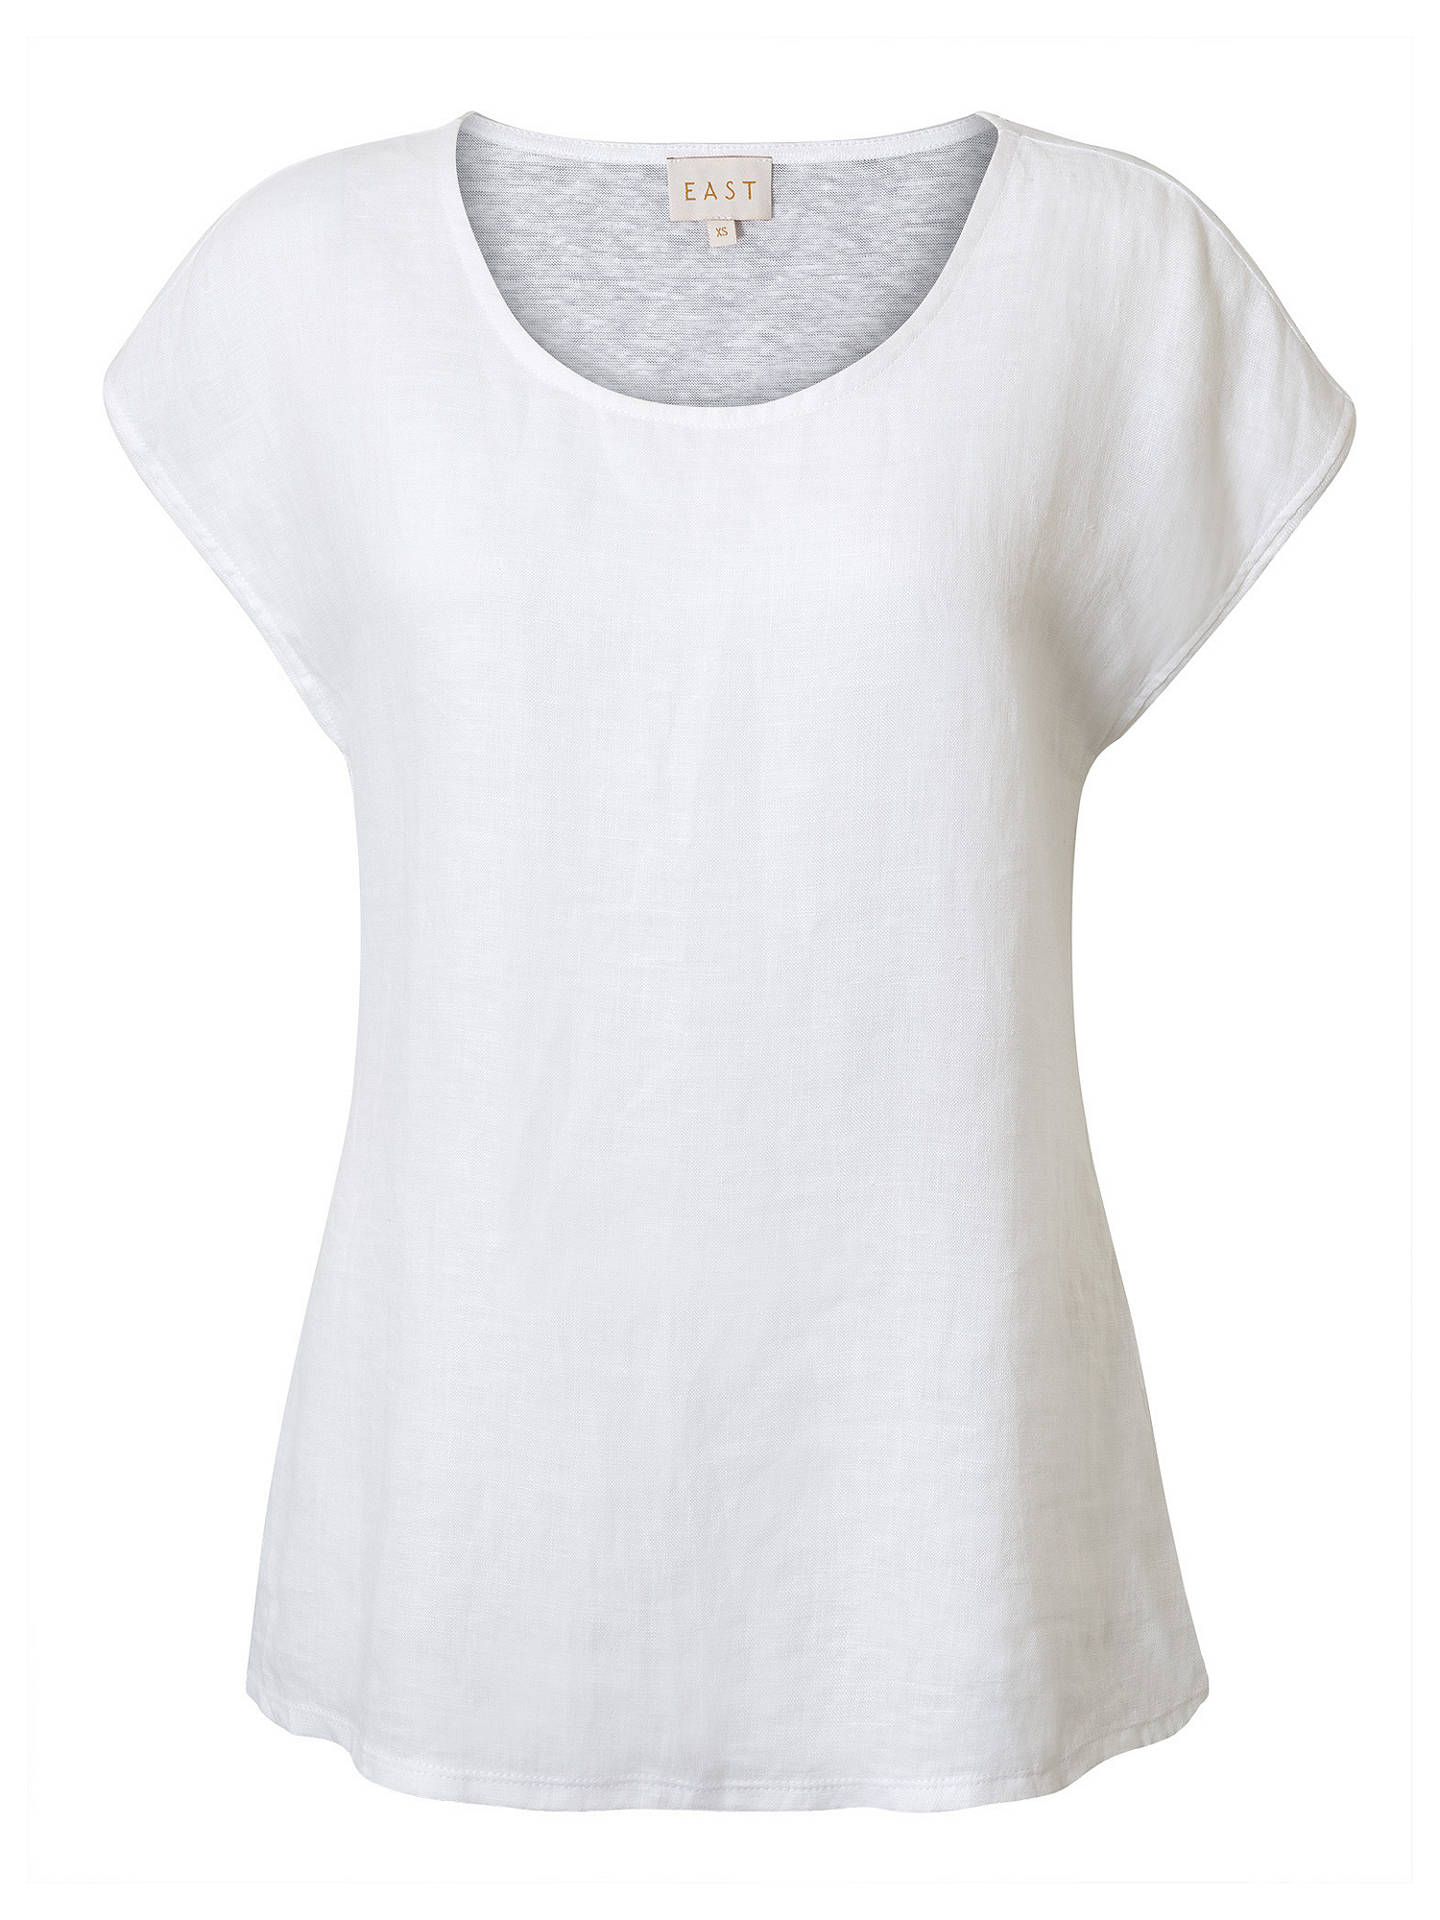 BuyEast Combination Jersey Top, White, XS Online at johnlewis.com